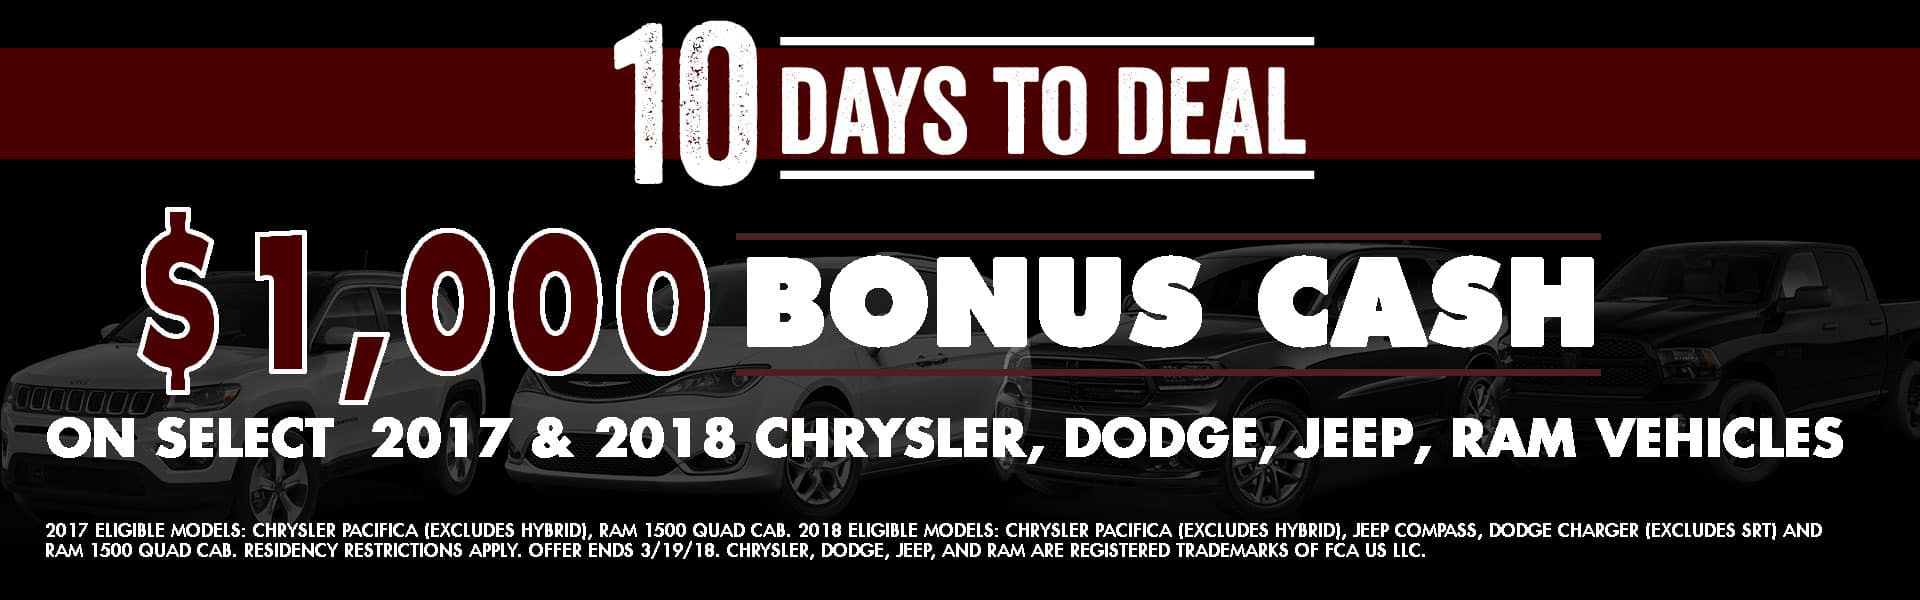 10 days to deal chrysler dodge jeep ram diehl of robinson serving robinson township, mckees rocks, north side, and pittsburgh